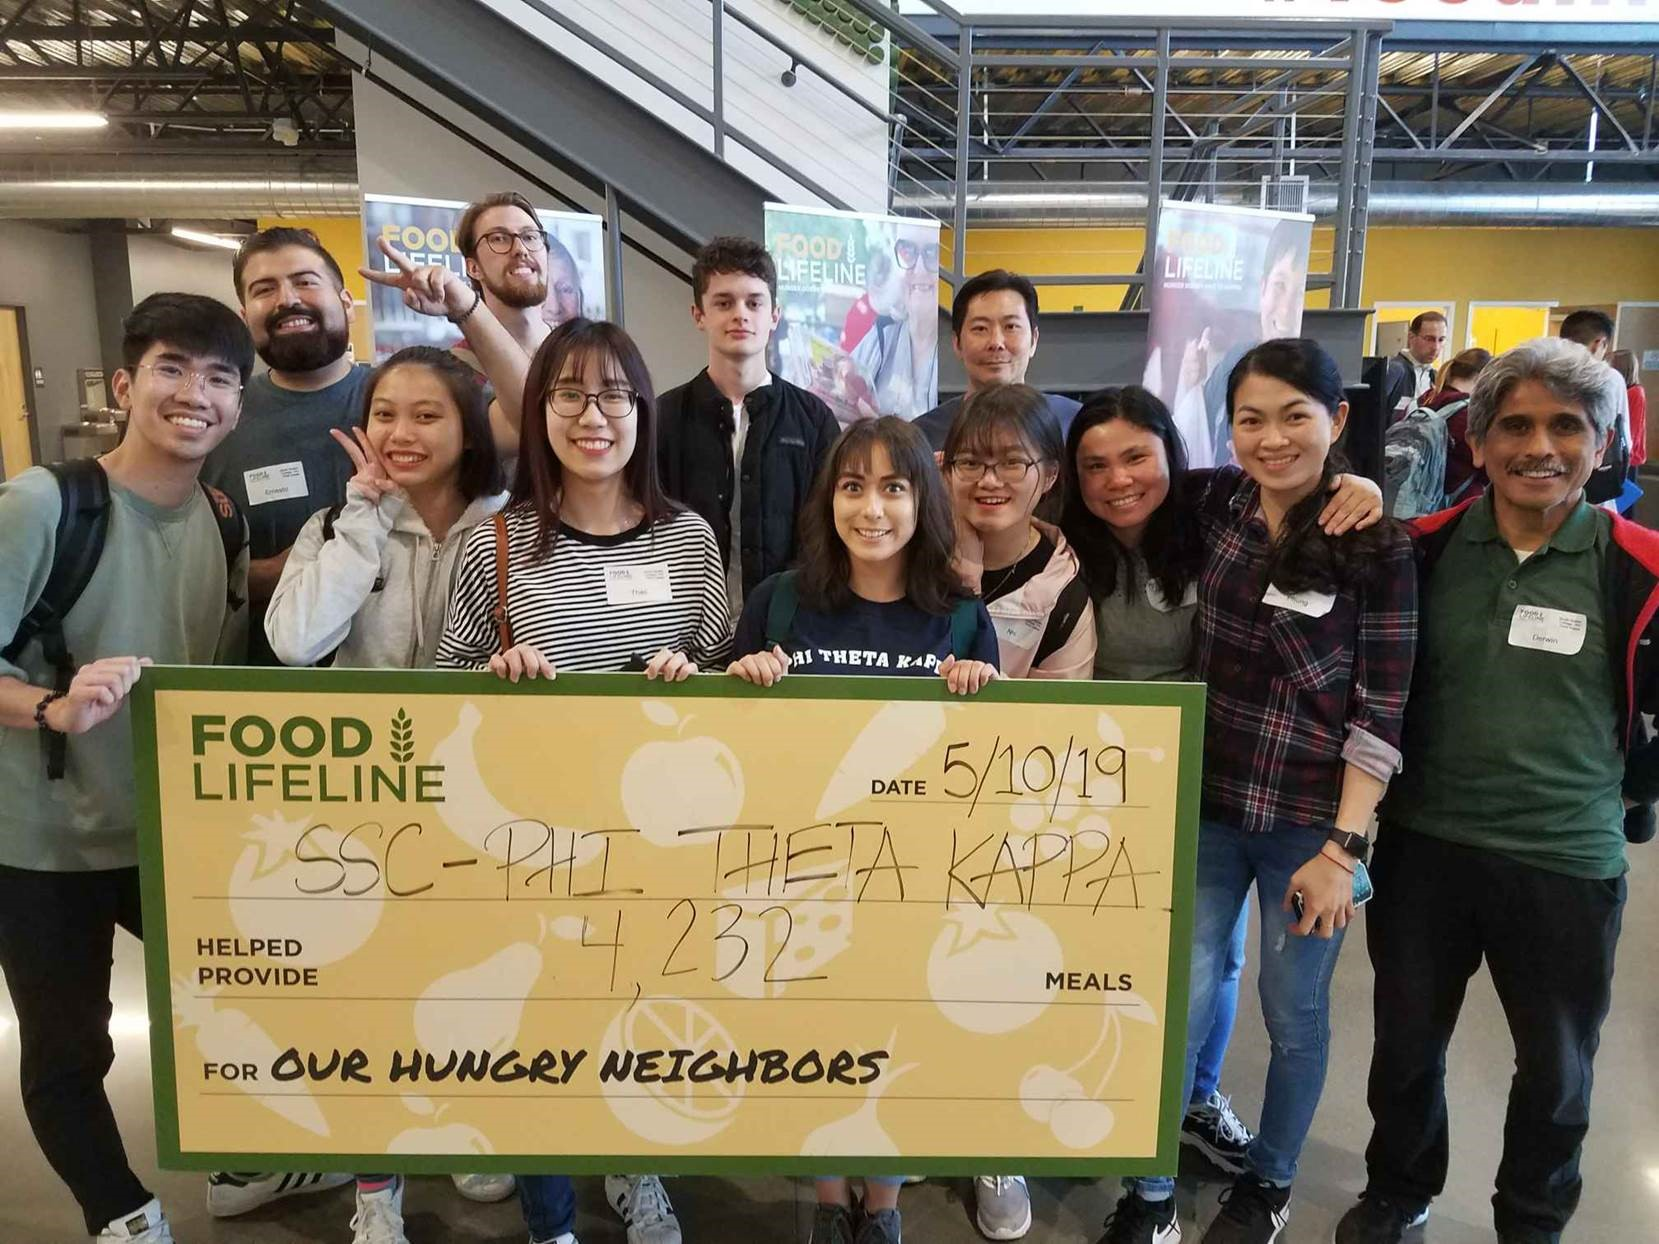 PTK Volunteers at Food Lifeline